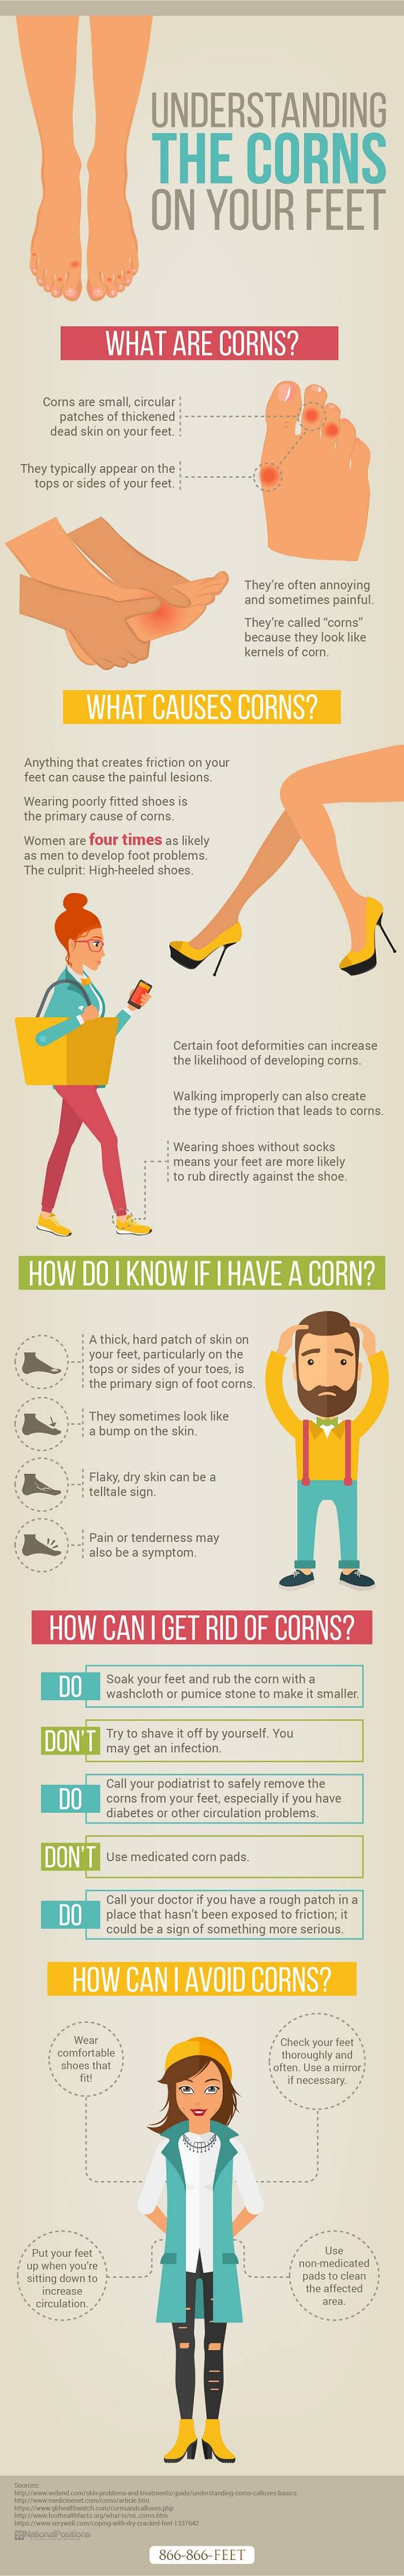 get rid of corns on feet